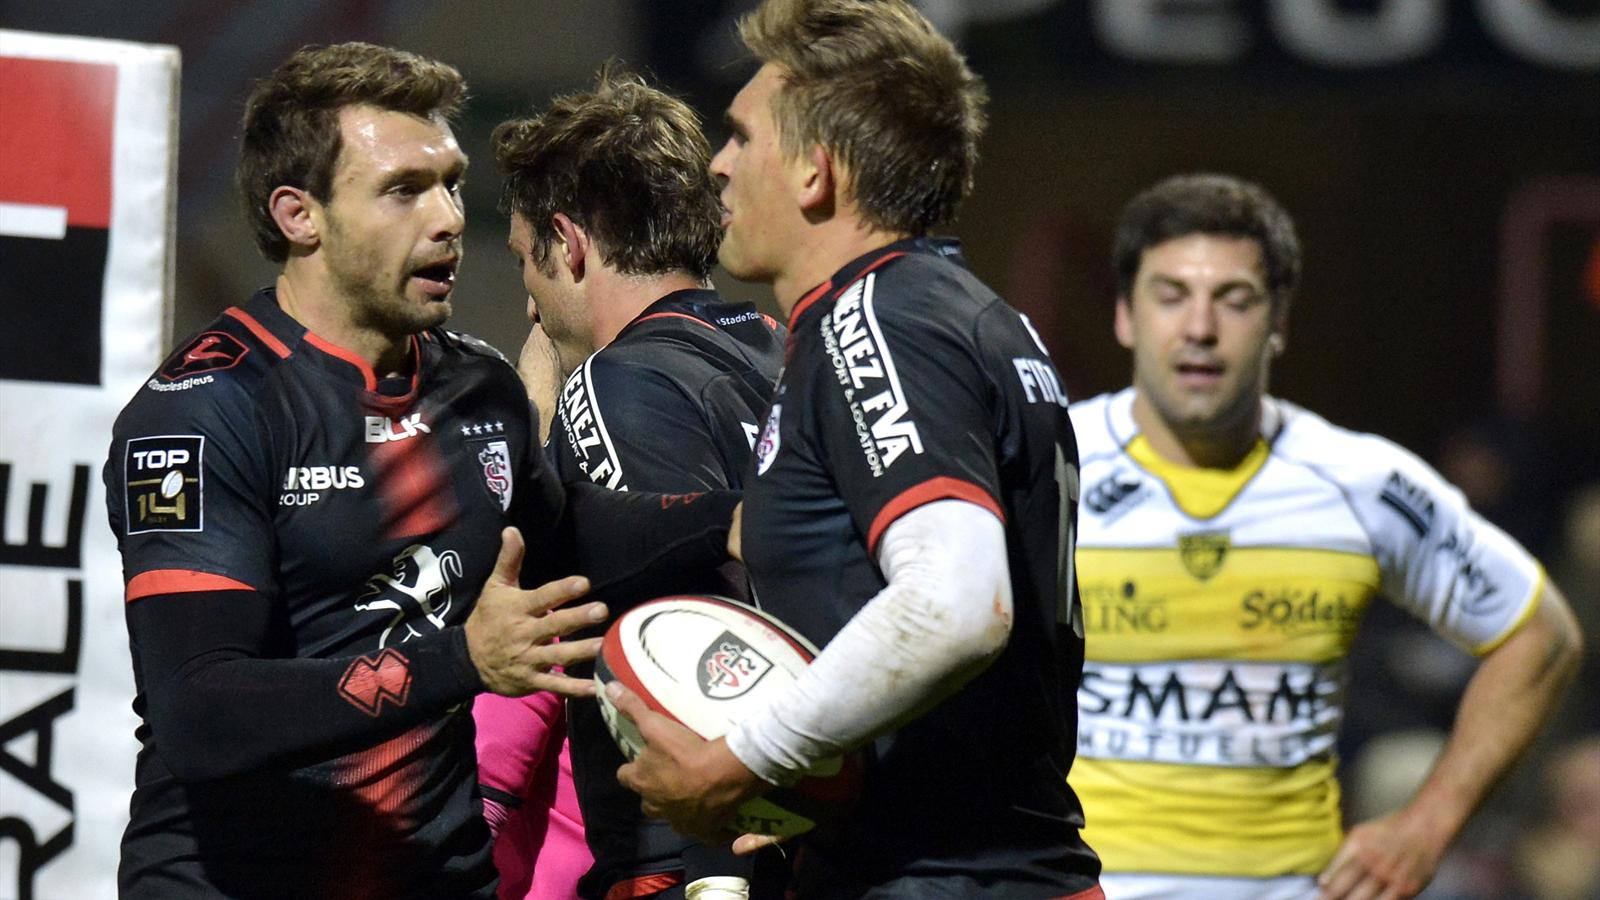 Vincent Clerc et Toby Flood (Toulouse) face à la Rochelle - 16 octobre 2015